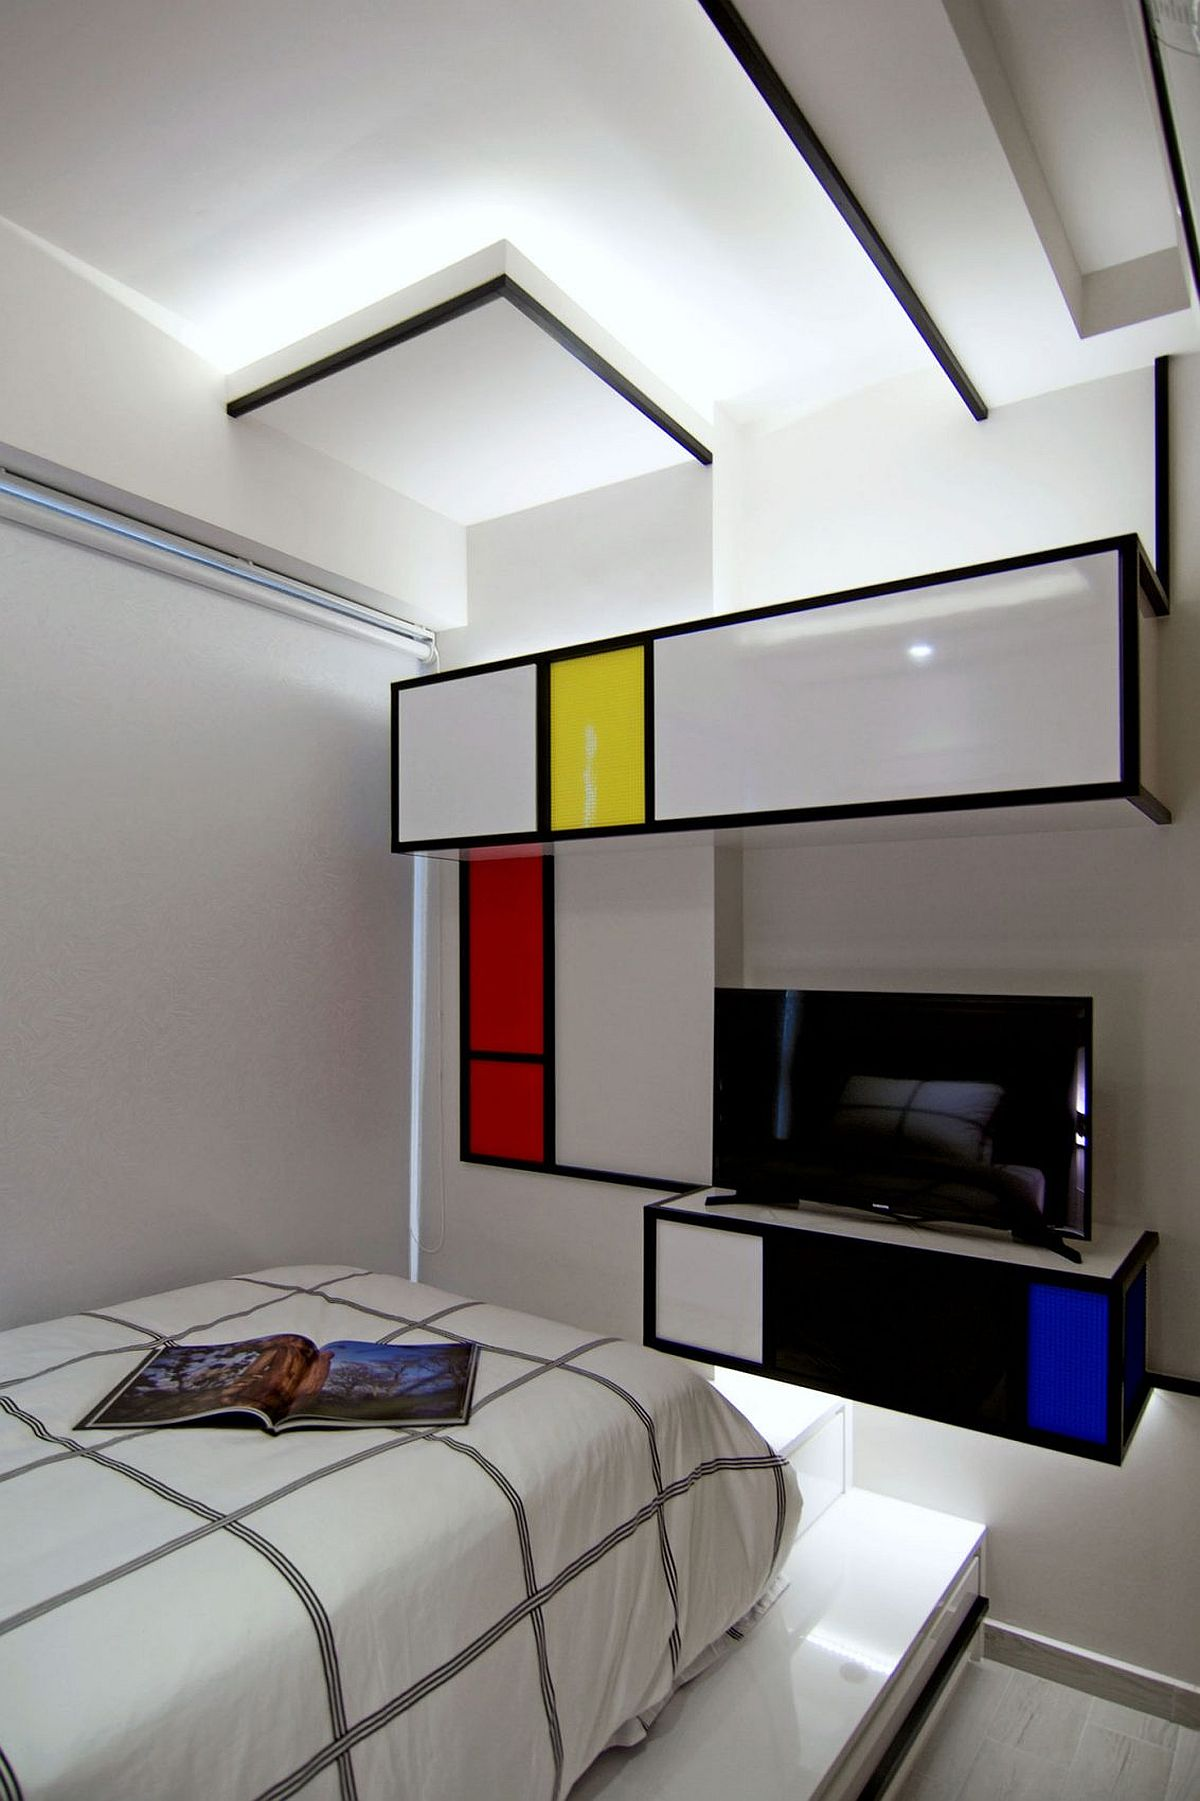 Rejuvenated Singapore Home Inspired by Piet Mondrian and